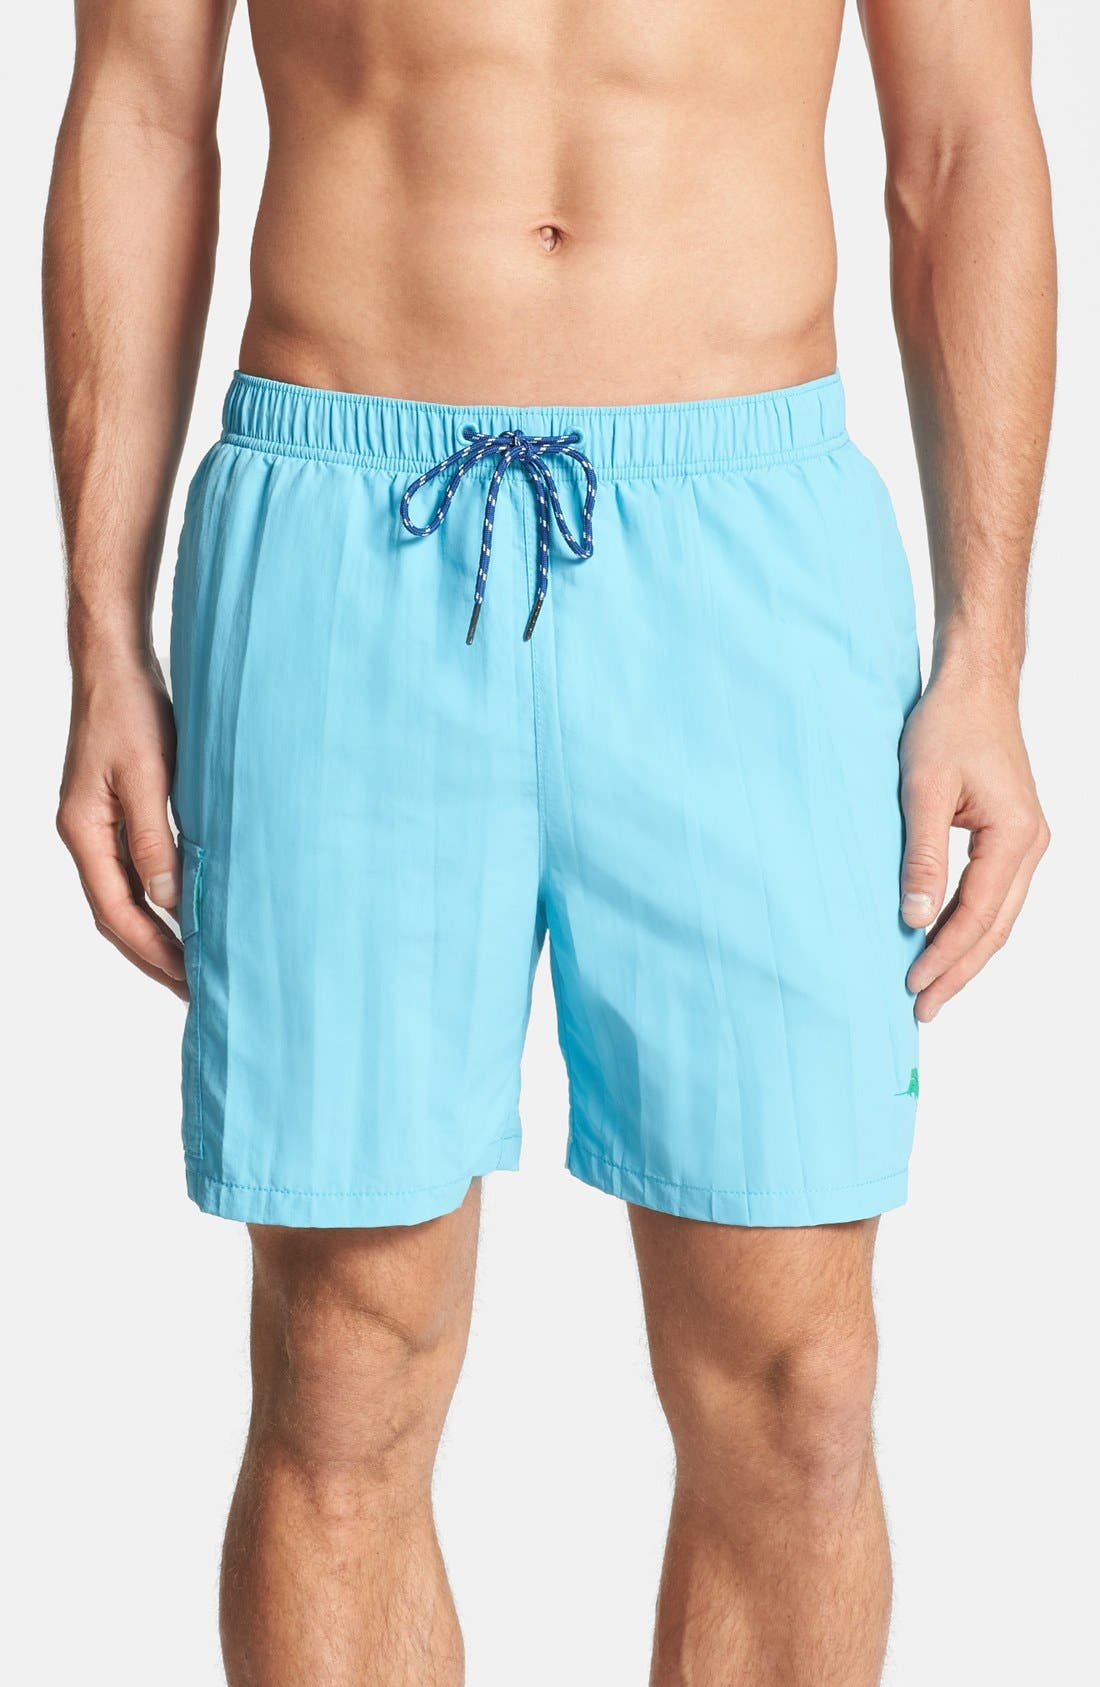 Naples Happy Go Cargo Swim Trunks,                         Main,                         color, 400